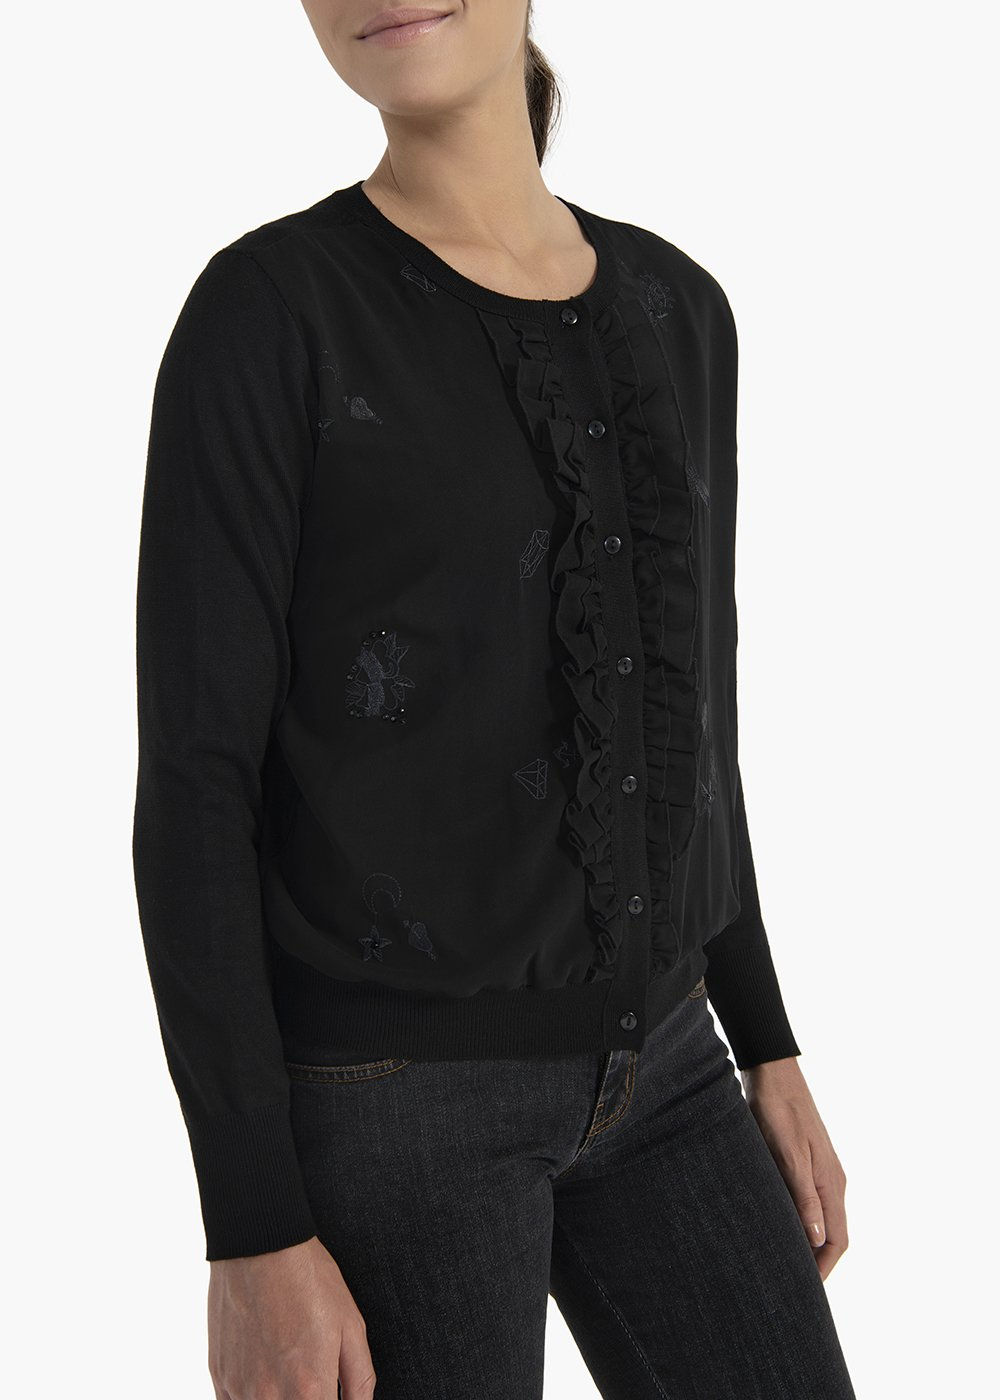 Cardigan Cory with georgette rouches detail on the front - Black - Woman